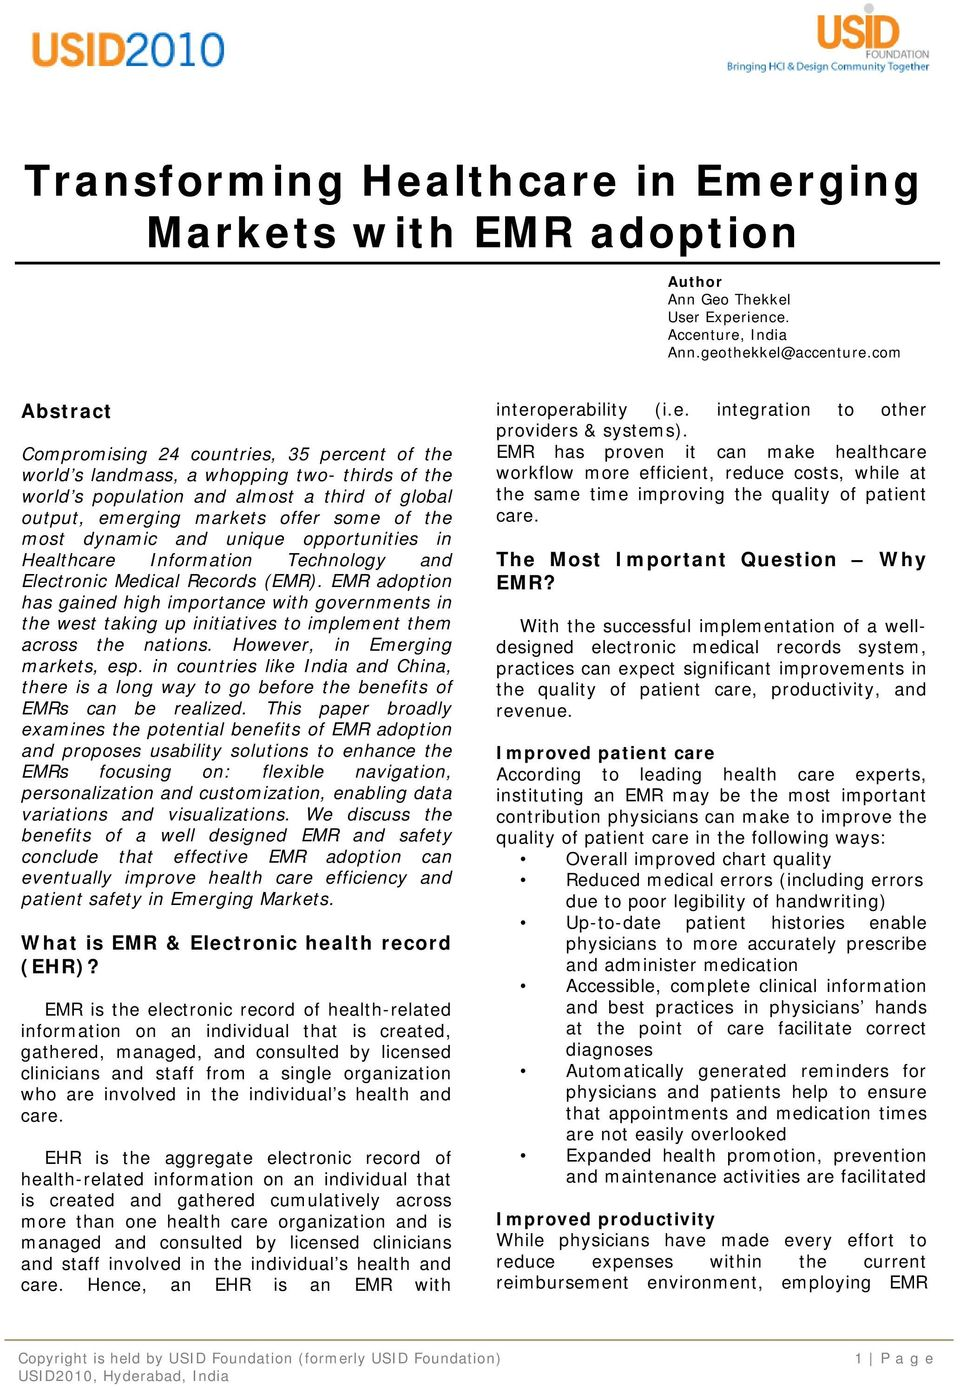 most dynamic and unique opportunities in Healthcare Information Technology and Electronic Medical Records (EMR).